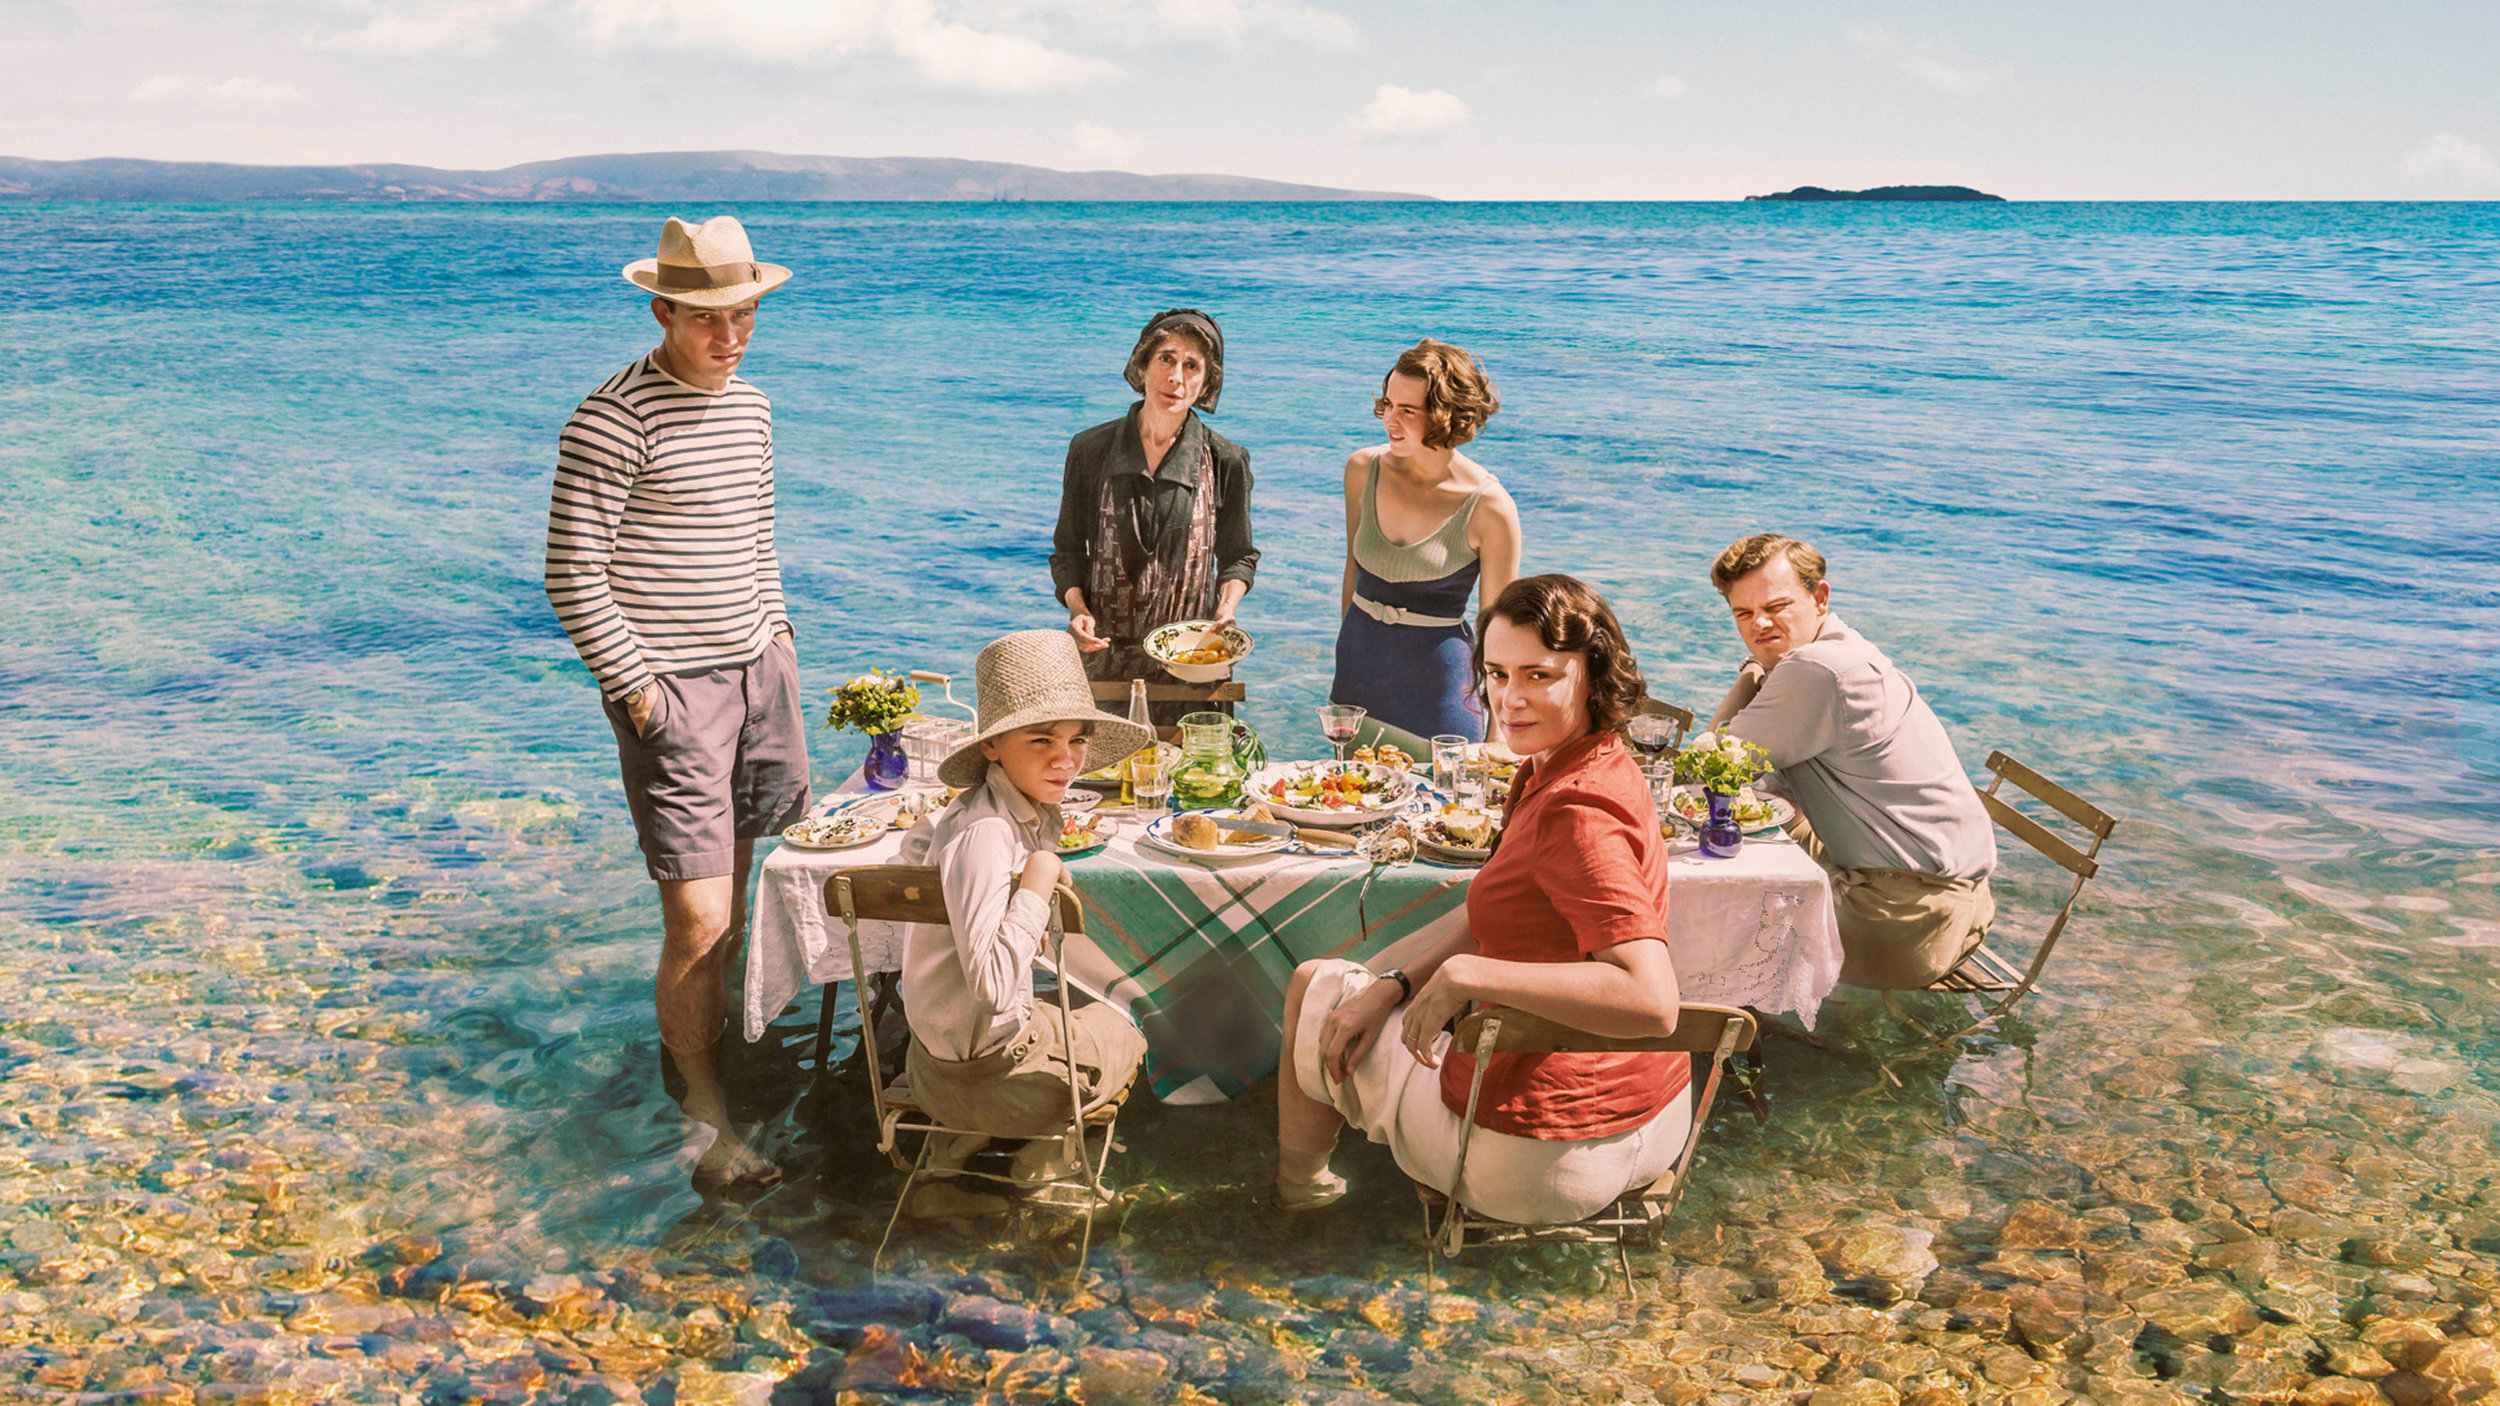 the-durrells-in-corfu-s1-preview-coming-soon-poster.jpg